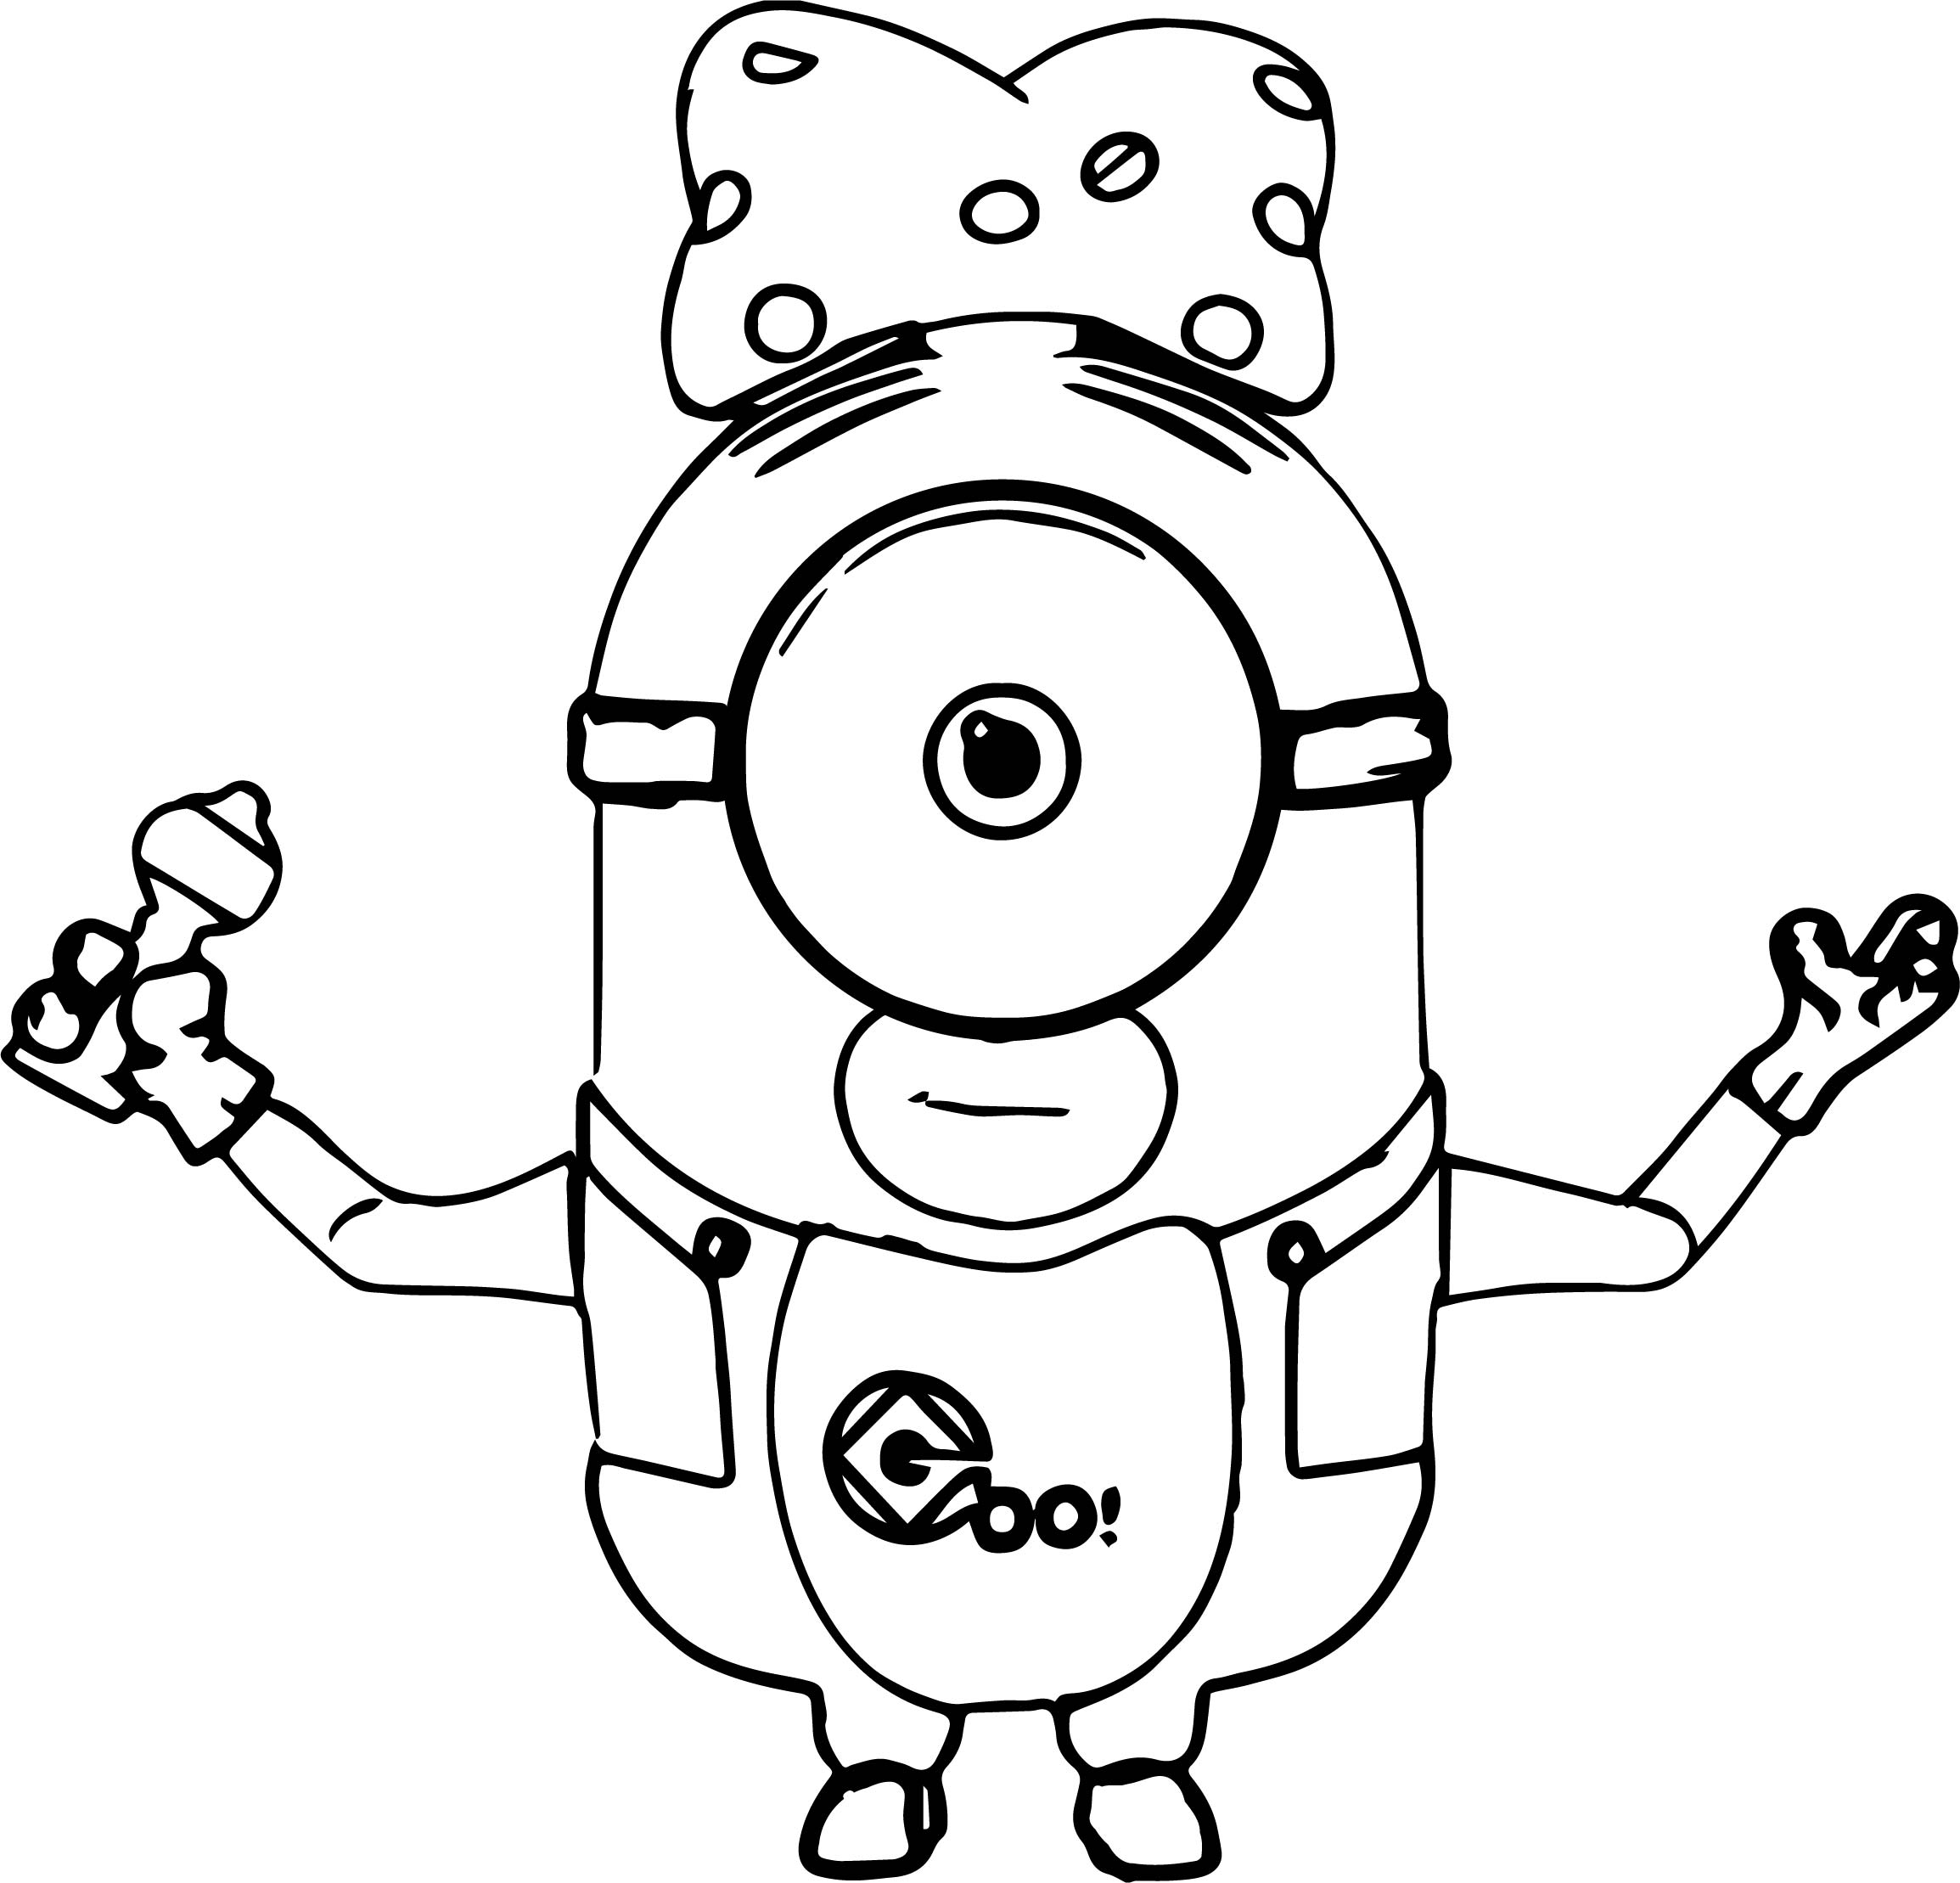 Just baby minions coloring page for Minion coloring pages free